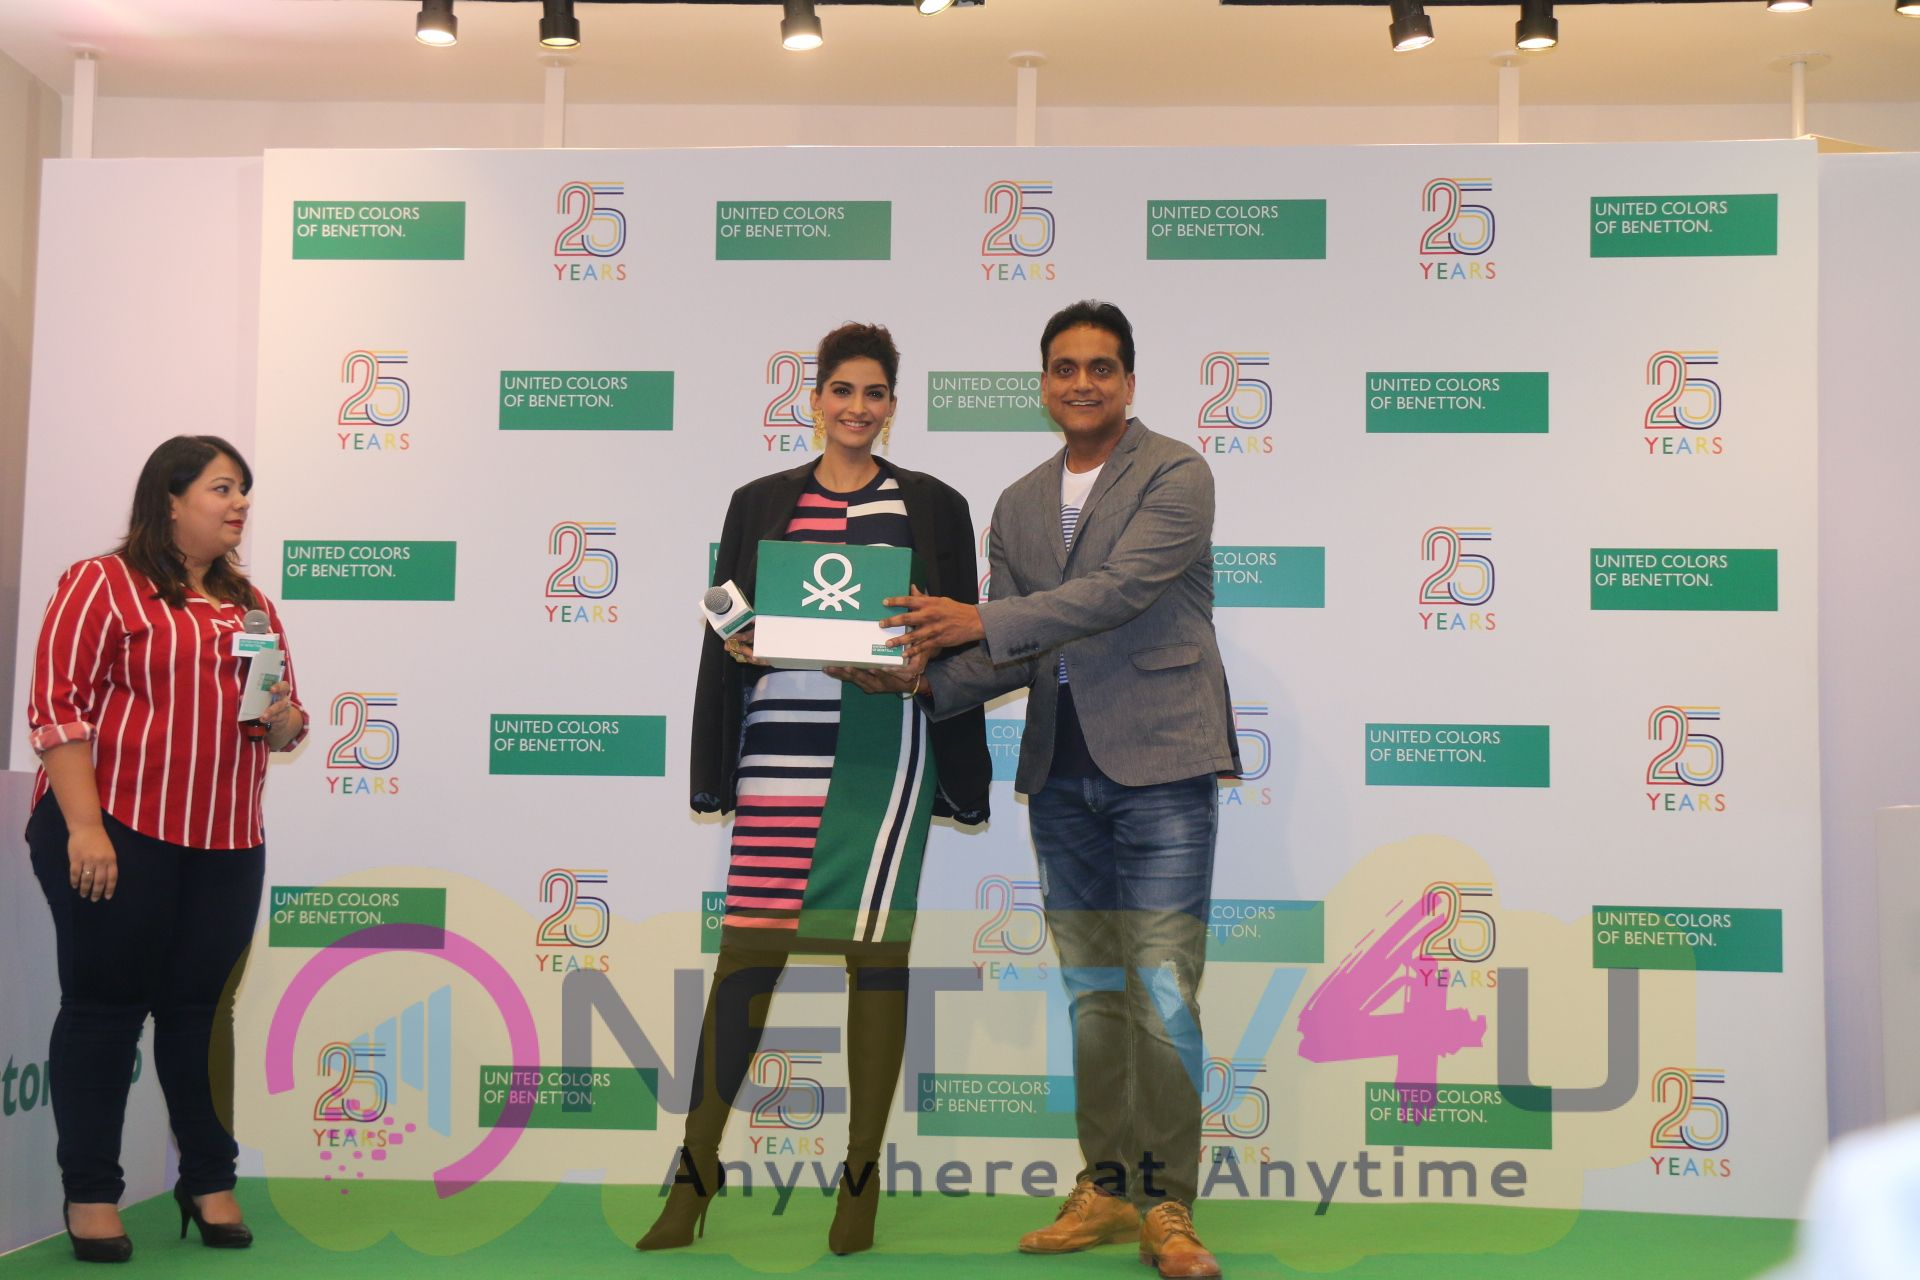 Sonam Kapoor During The 25 Years Celebration Of Benetton India Of Heritage And Values In India At United Colors Of Benetton Images